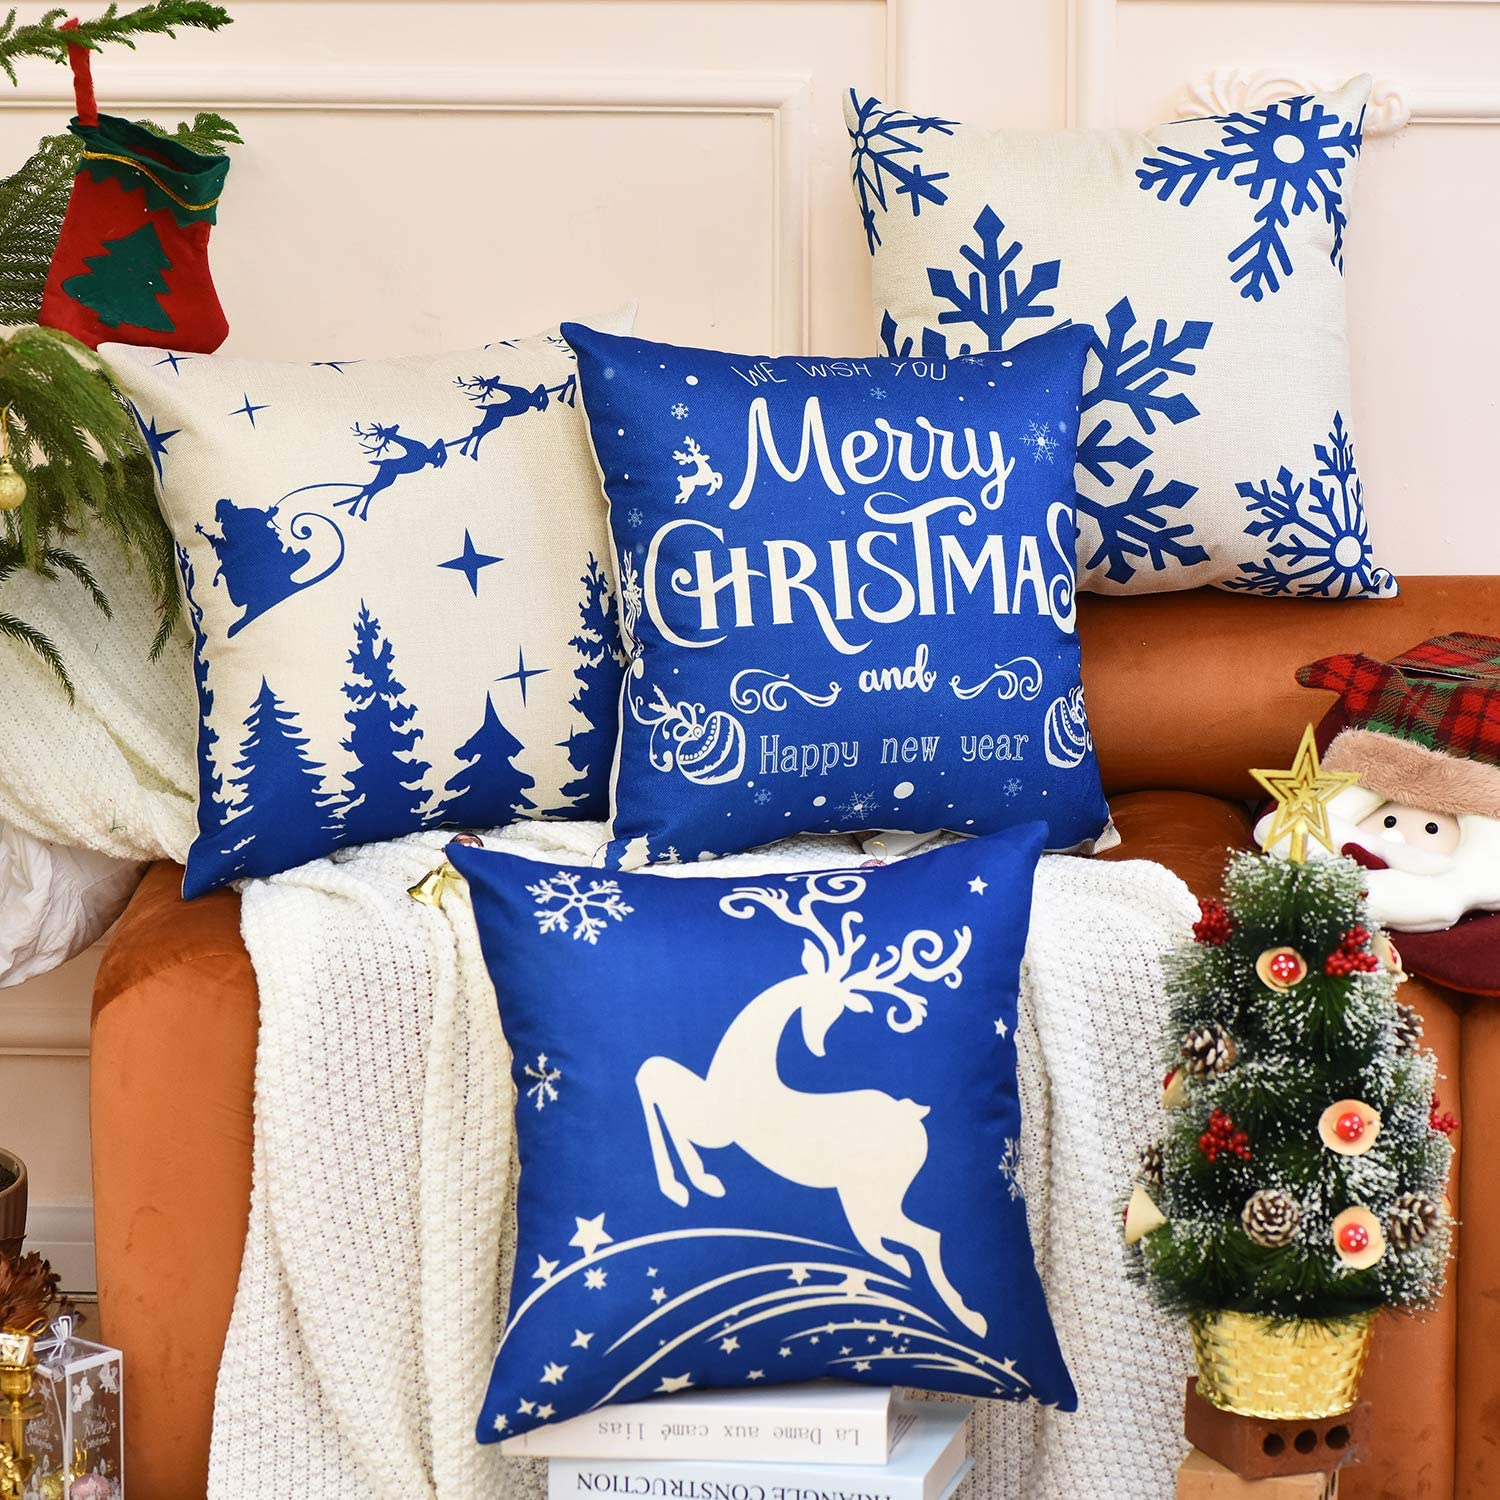 Blue and White with Holiday Greetings